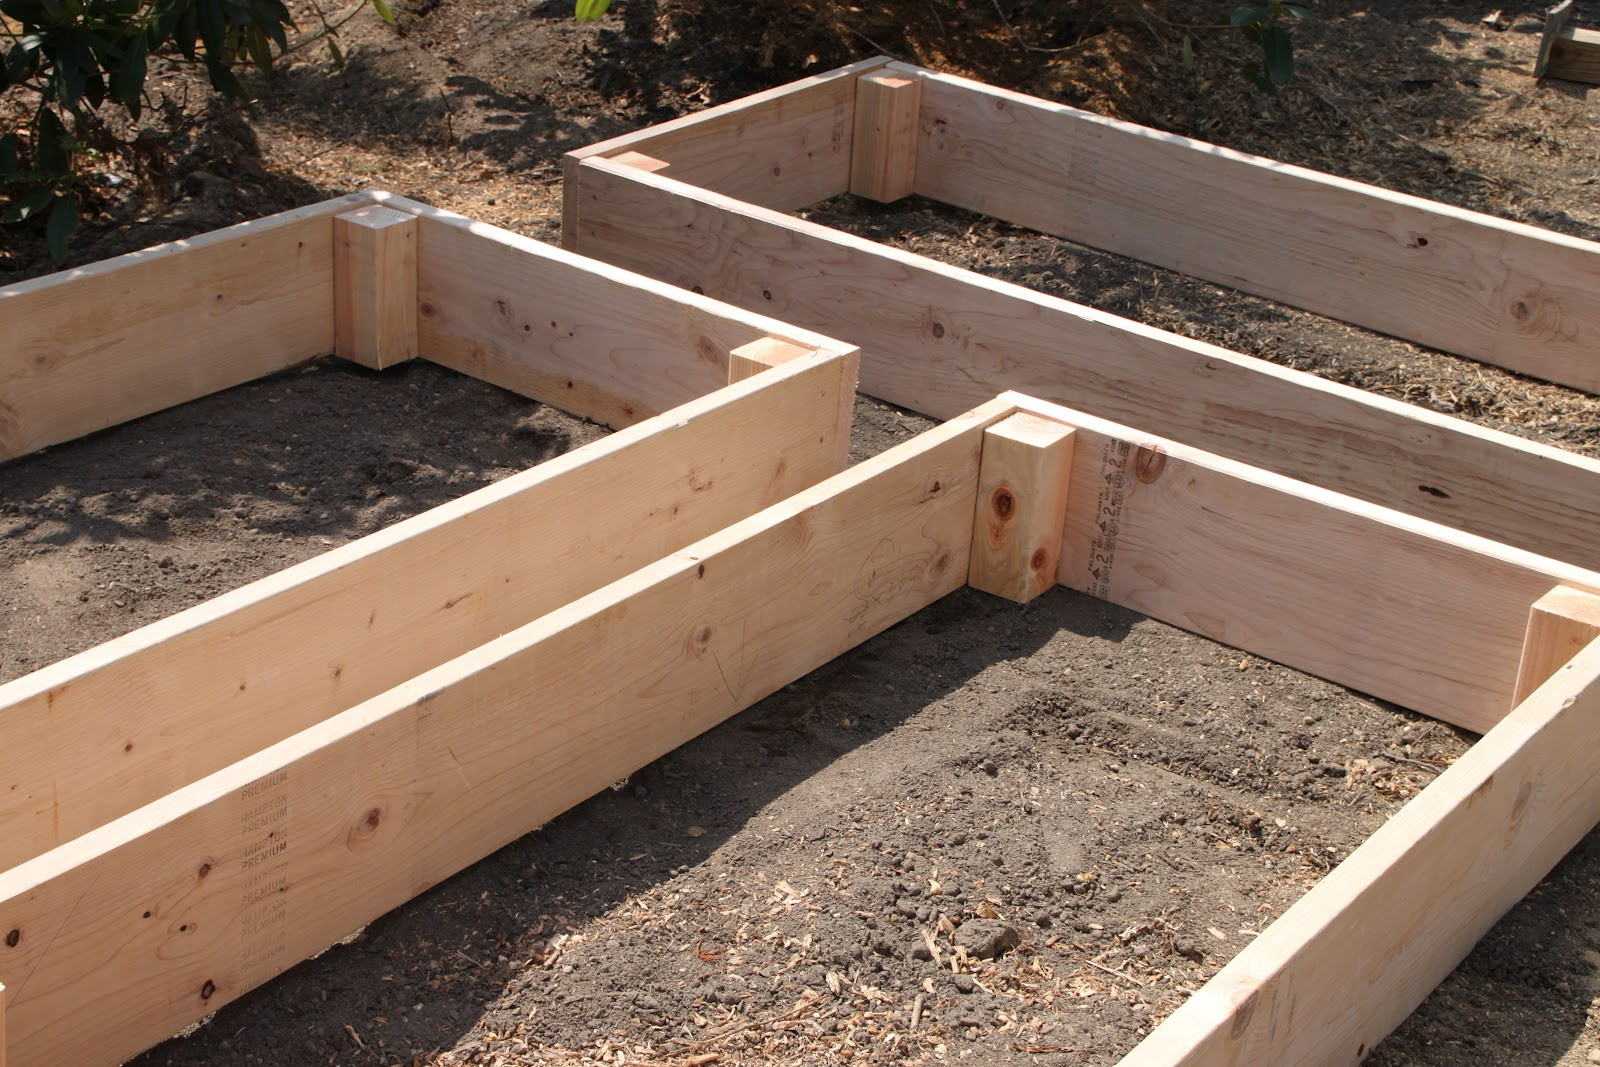 Best ideas about Easy DIY Raised Garden Bed . Save or Pin Tilly s Nest Easy DIY Raised Garden Beds Now.